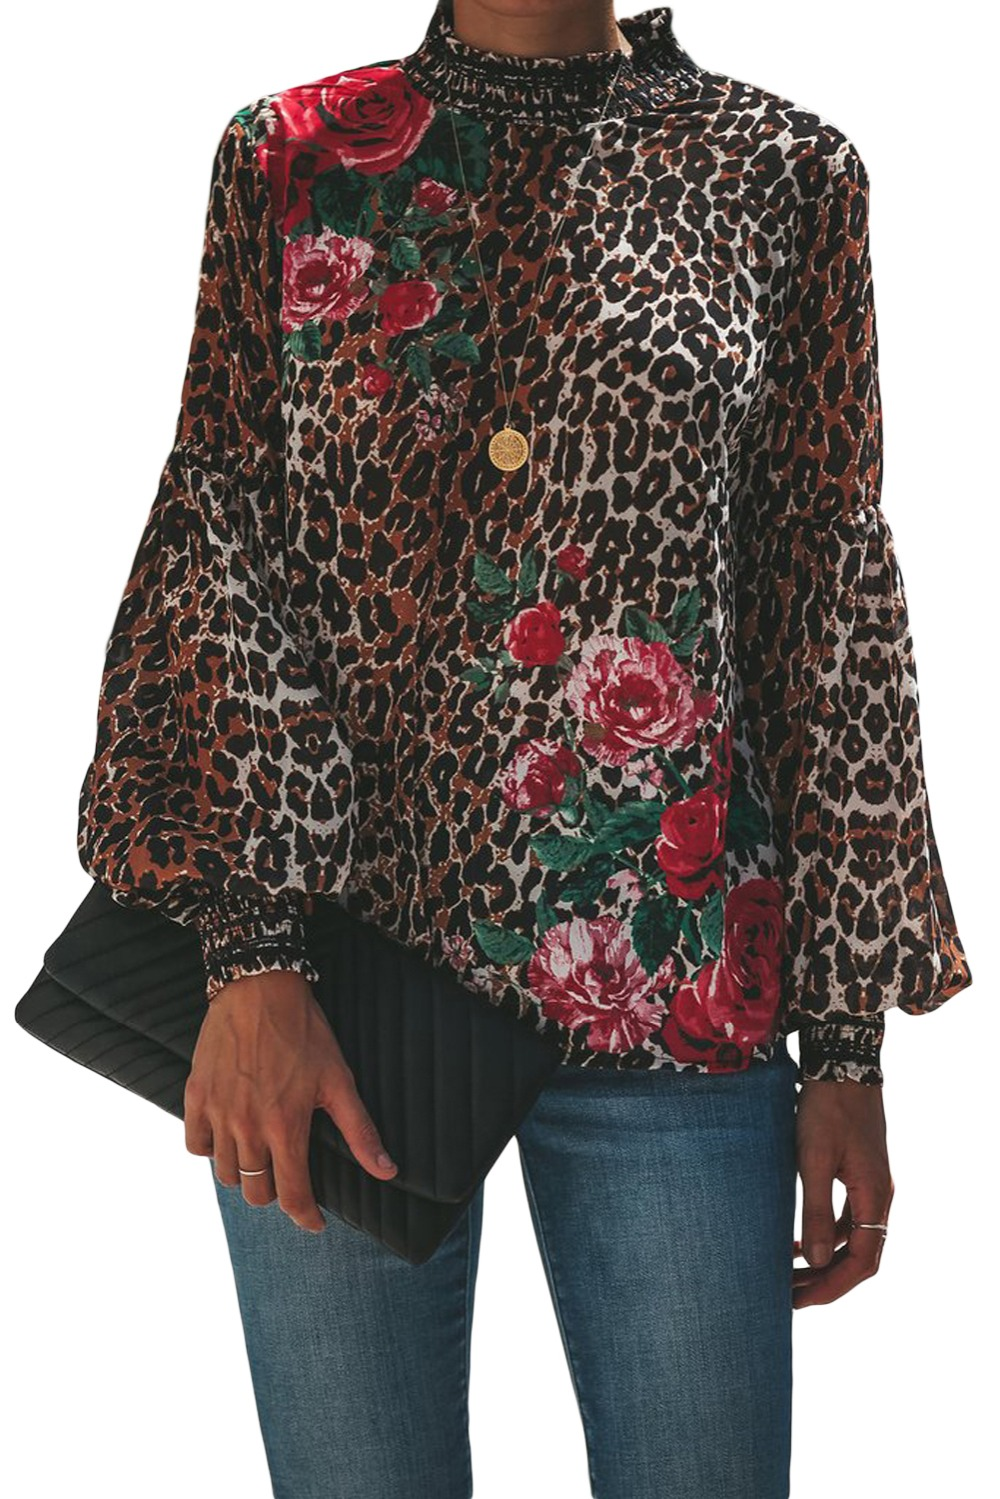 Leopard-Peony-Print-Smocked-Long-Sleeve-Blouse-LC251632-20-1